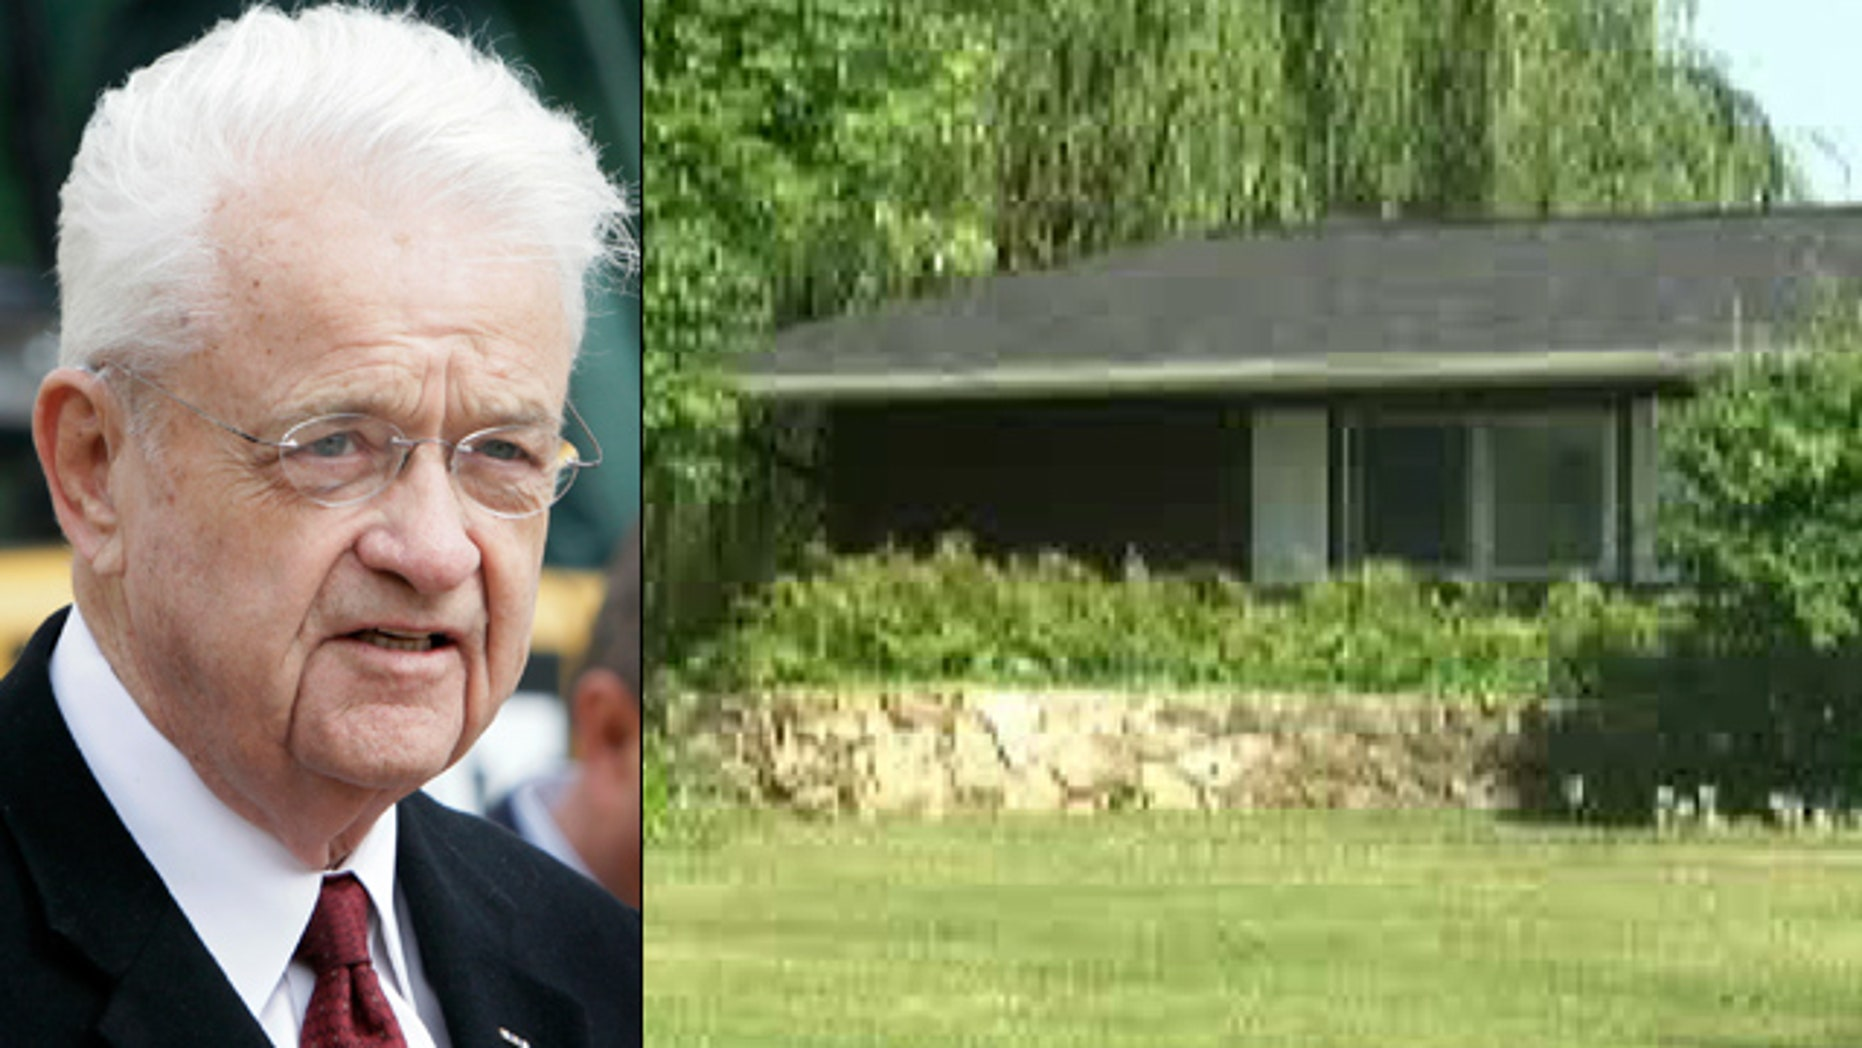 Rep. Leonard Boswell says the man wearing a ski mask burst into the home near Lamoni July 16, 2011, grabbed his daughter and demanded money.